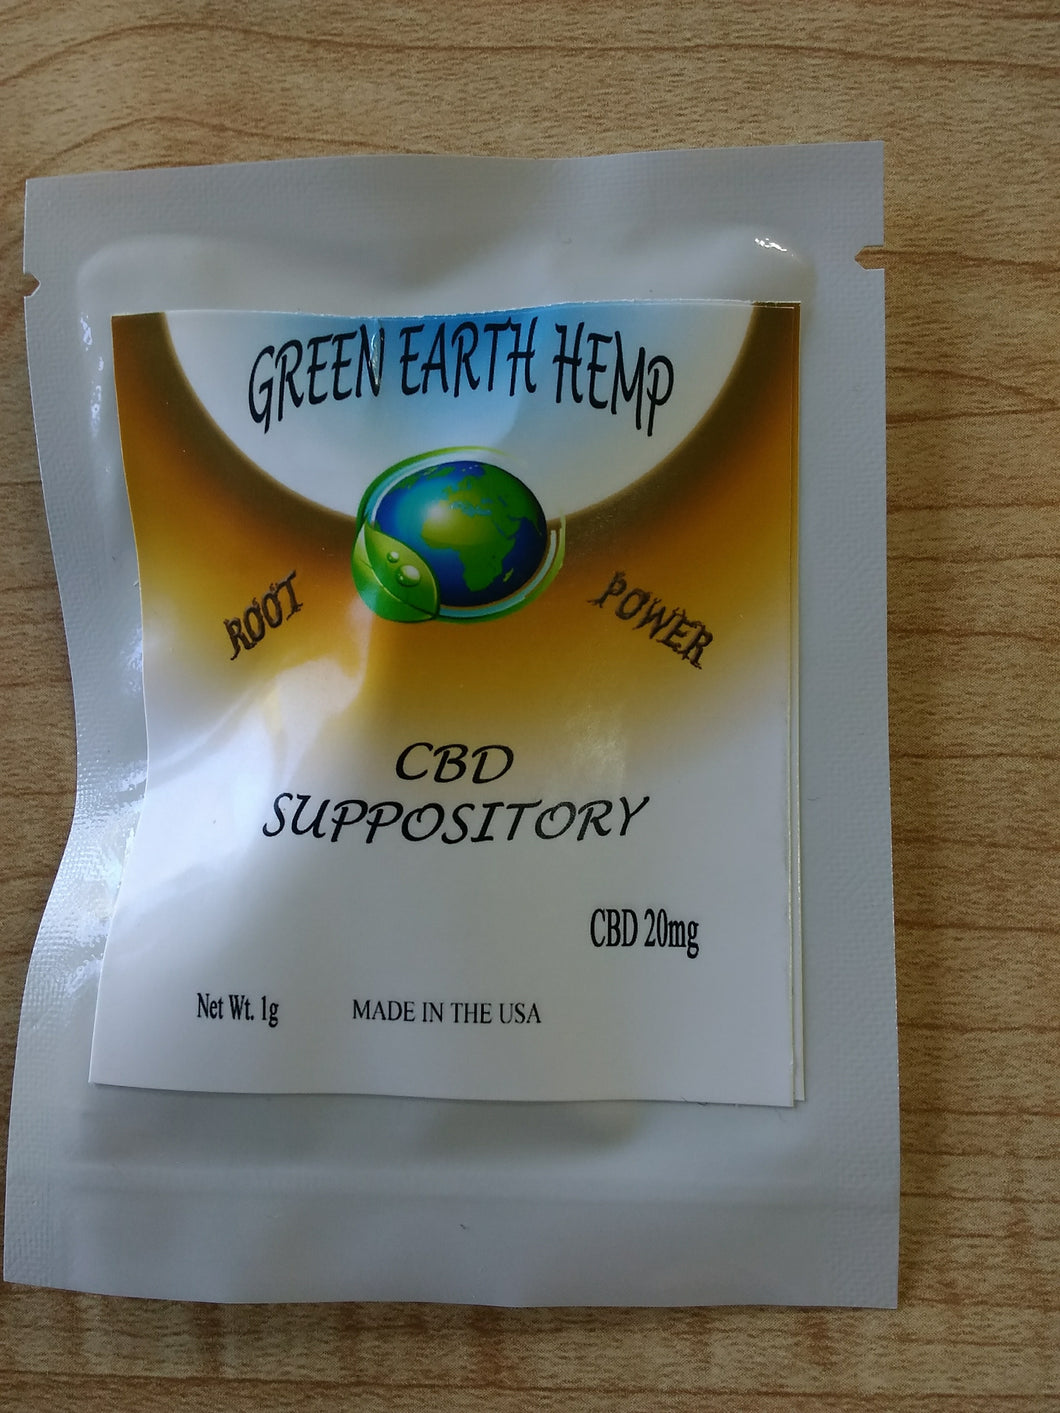 Green Earth Hemp - CBD Suppository